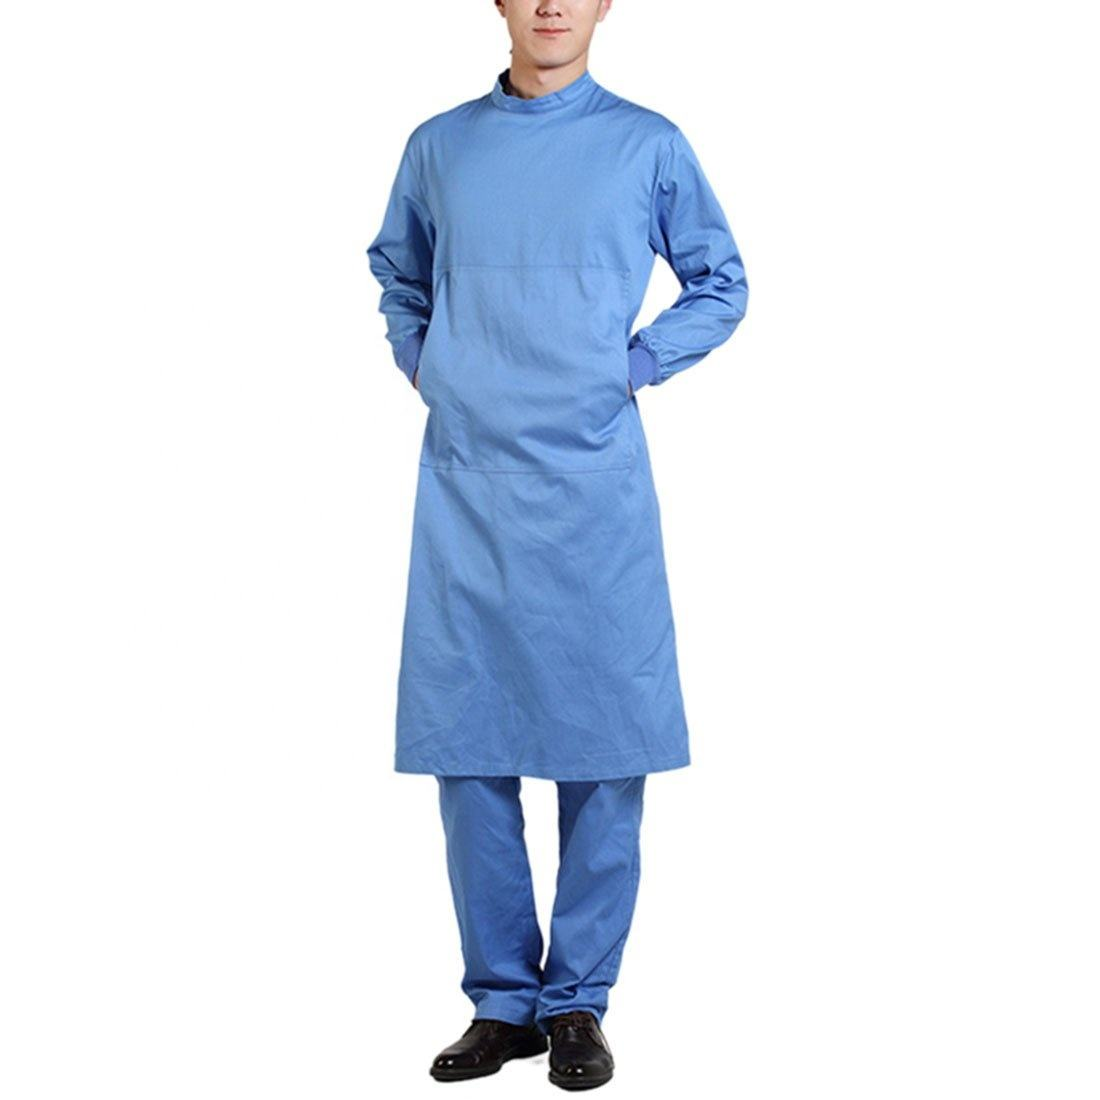 Wholesale Anatomy Short Sleeve TC material Medical Uniforms Scrub Sets Dental Clinic Doctors Surgical Clothes